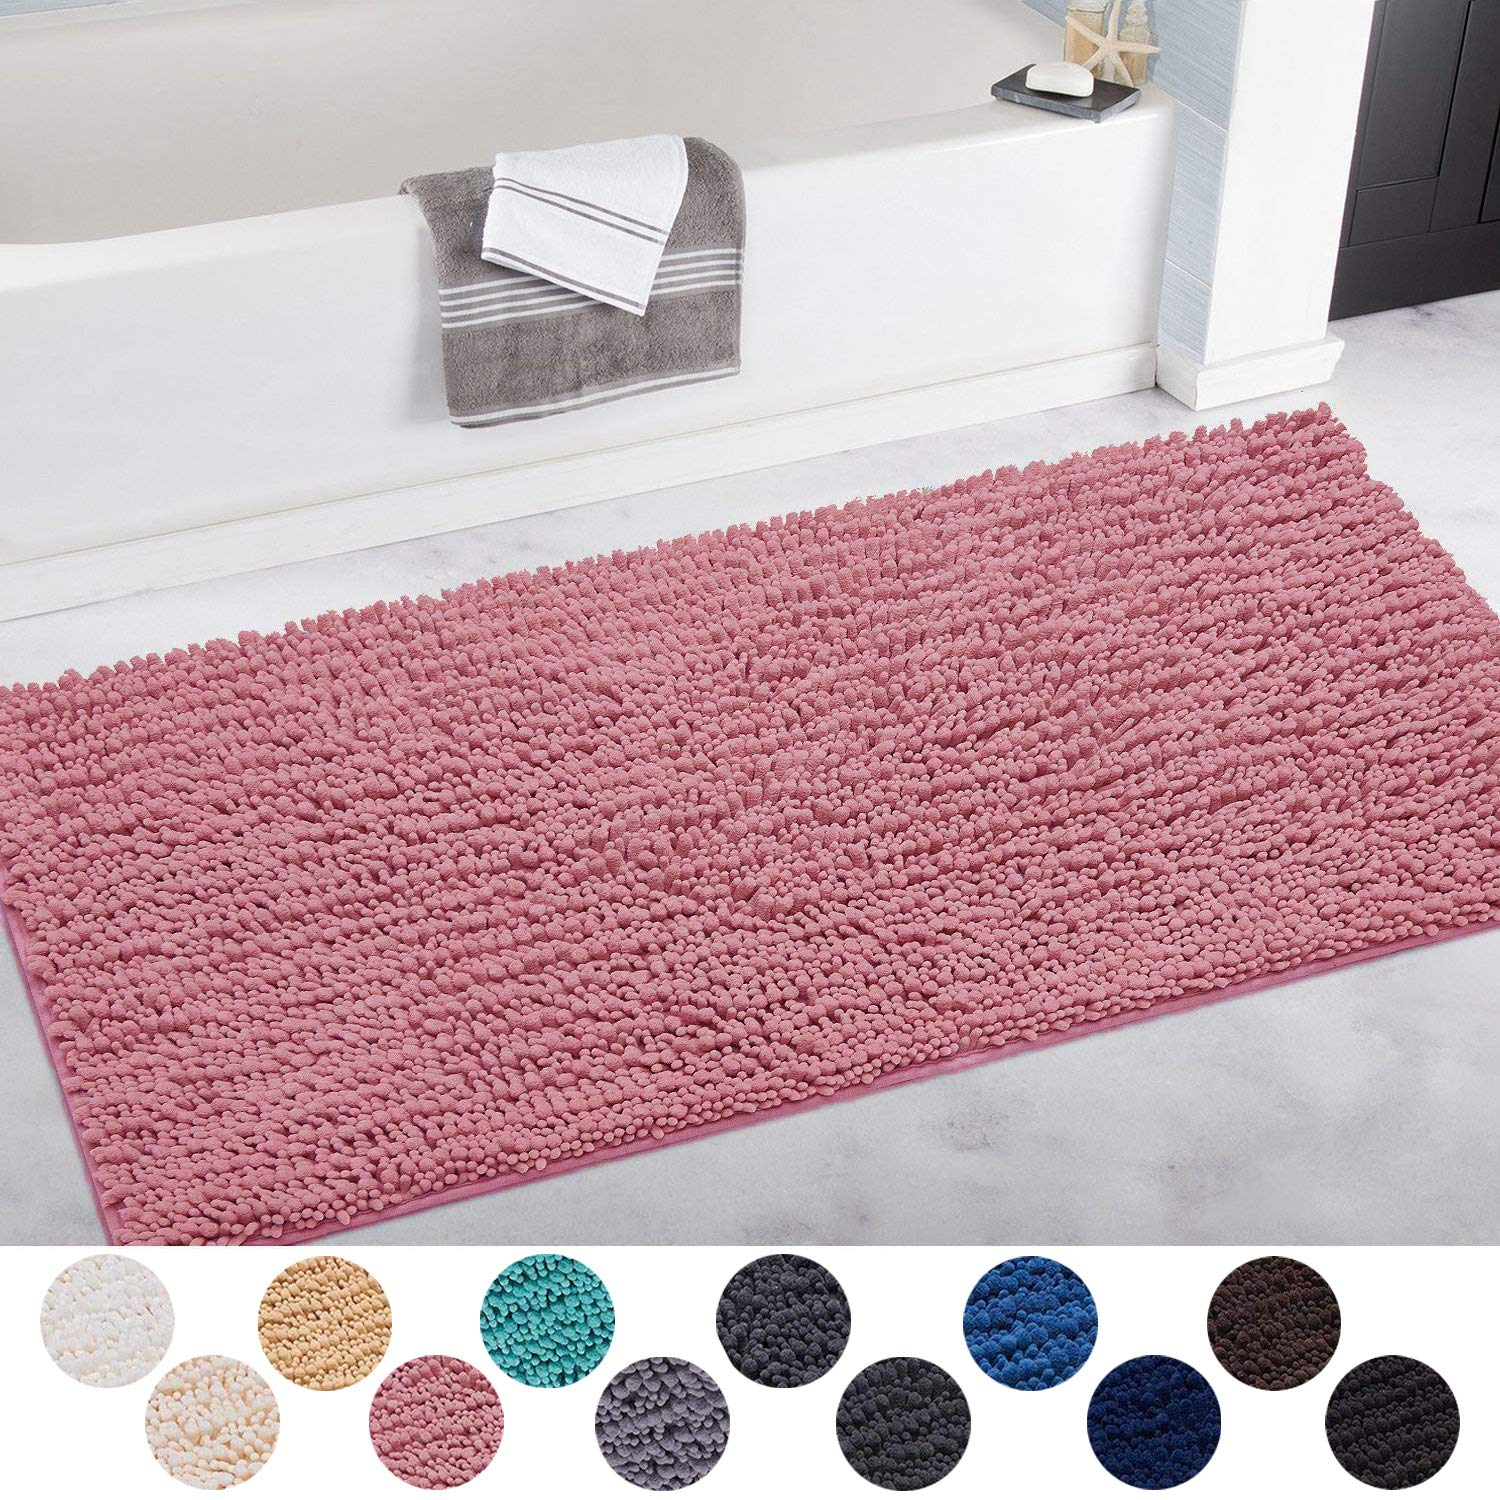 DEARTOWN Non-Slip Shaggy Bathroom Rug(31x59 Inches,Pink),Soft Microfibers Chenille Bath Mat with Water Absorbent, Machine Washable